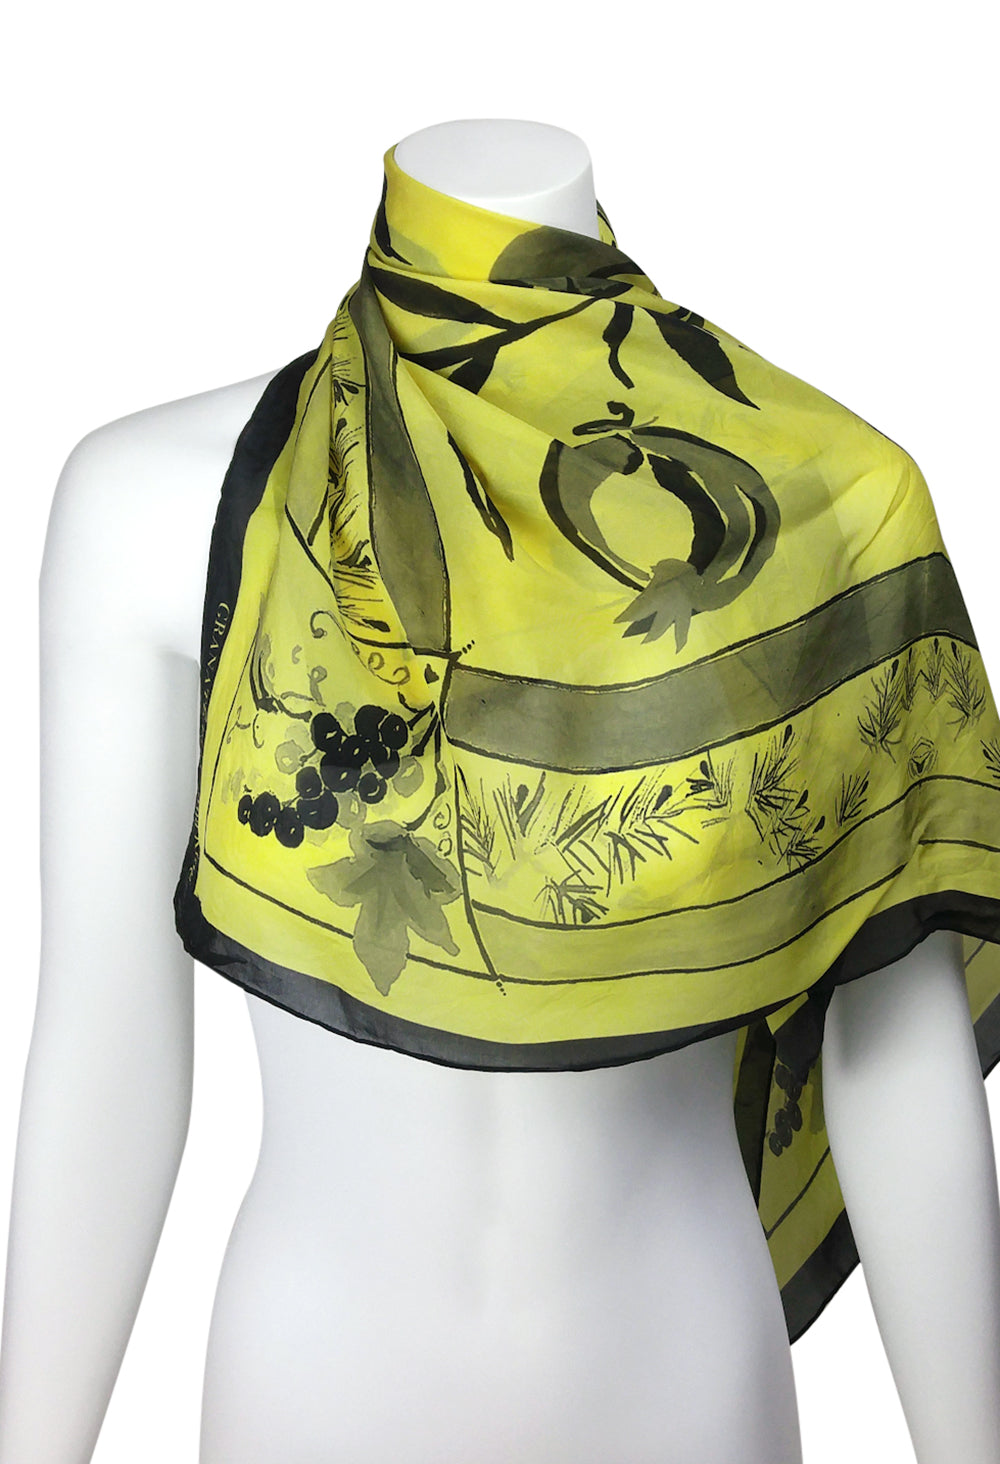 Three Gifts Pomegranate Scarf SQUARE  Chiffon